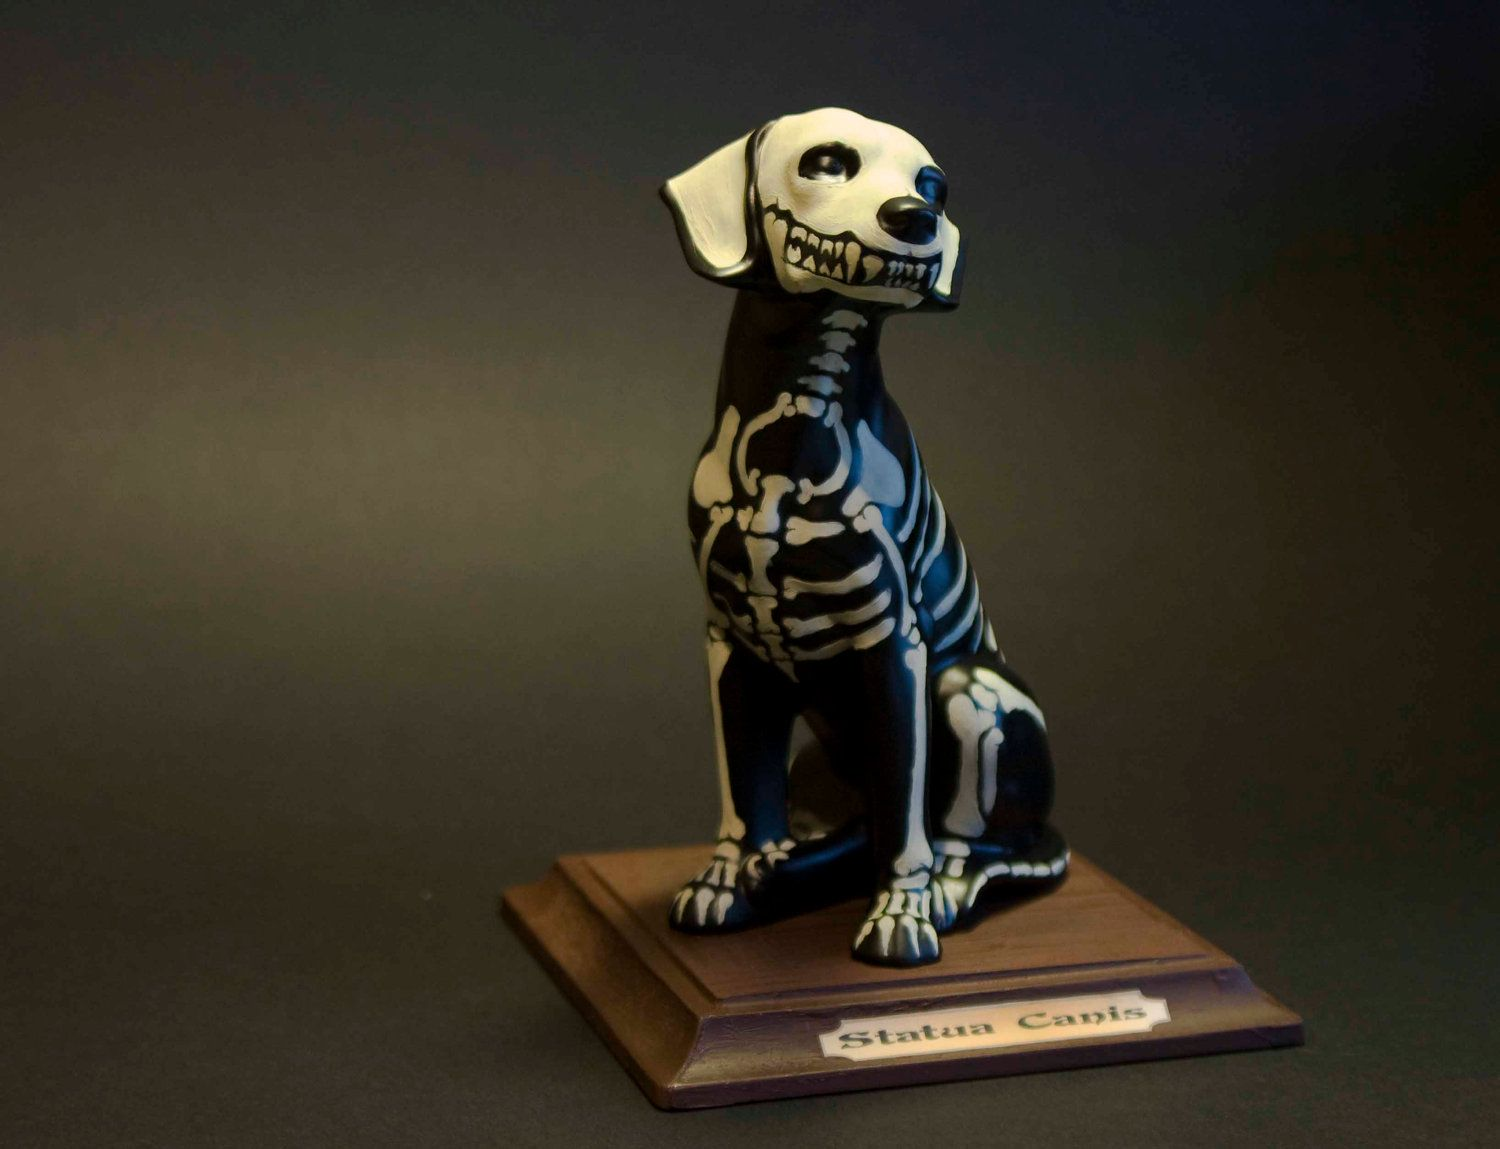 Ceramic dog skeleton very day of the dead skull item 5900 ceramic dog skeleton very day of the dead skull item 5900 dailygadgetfo Choice Image